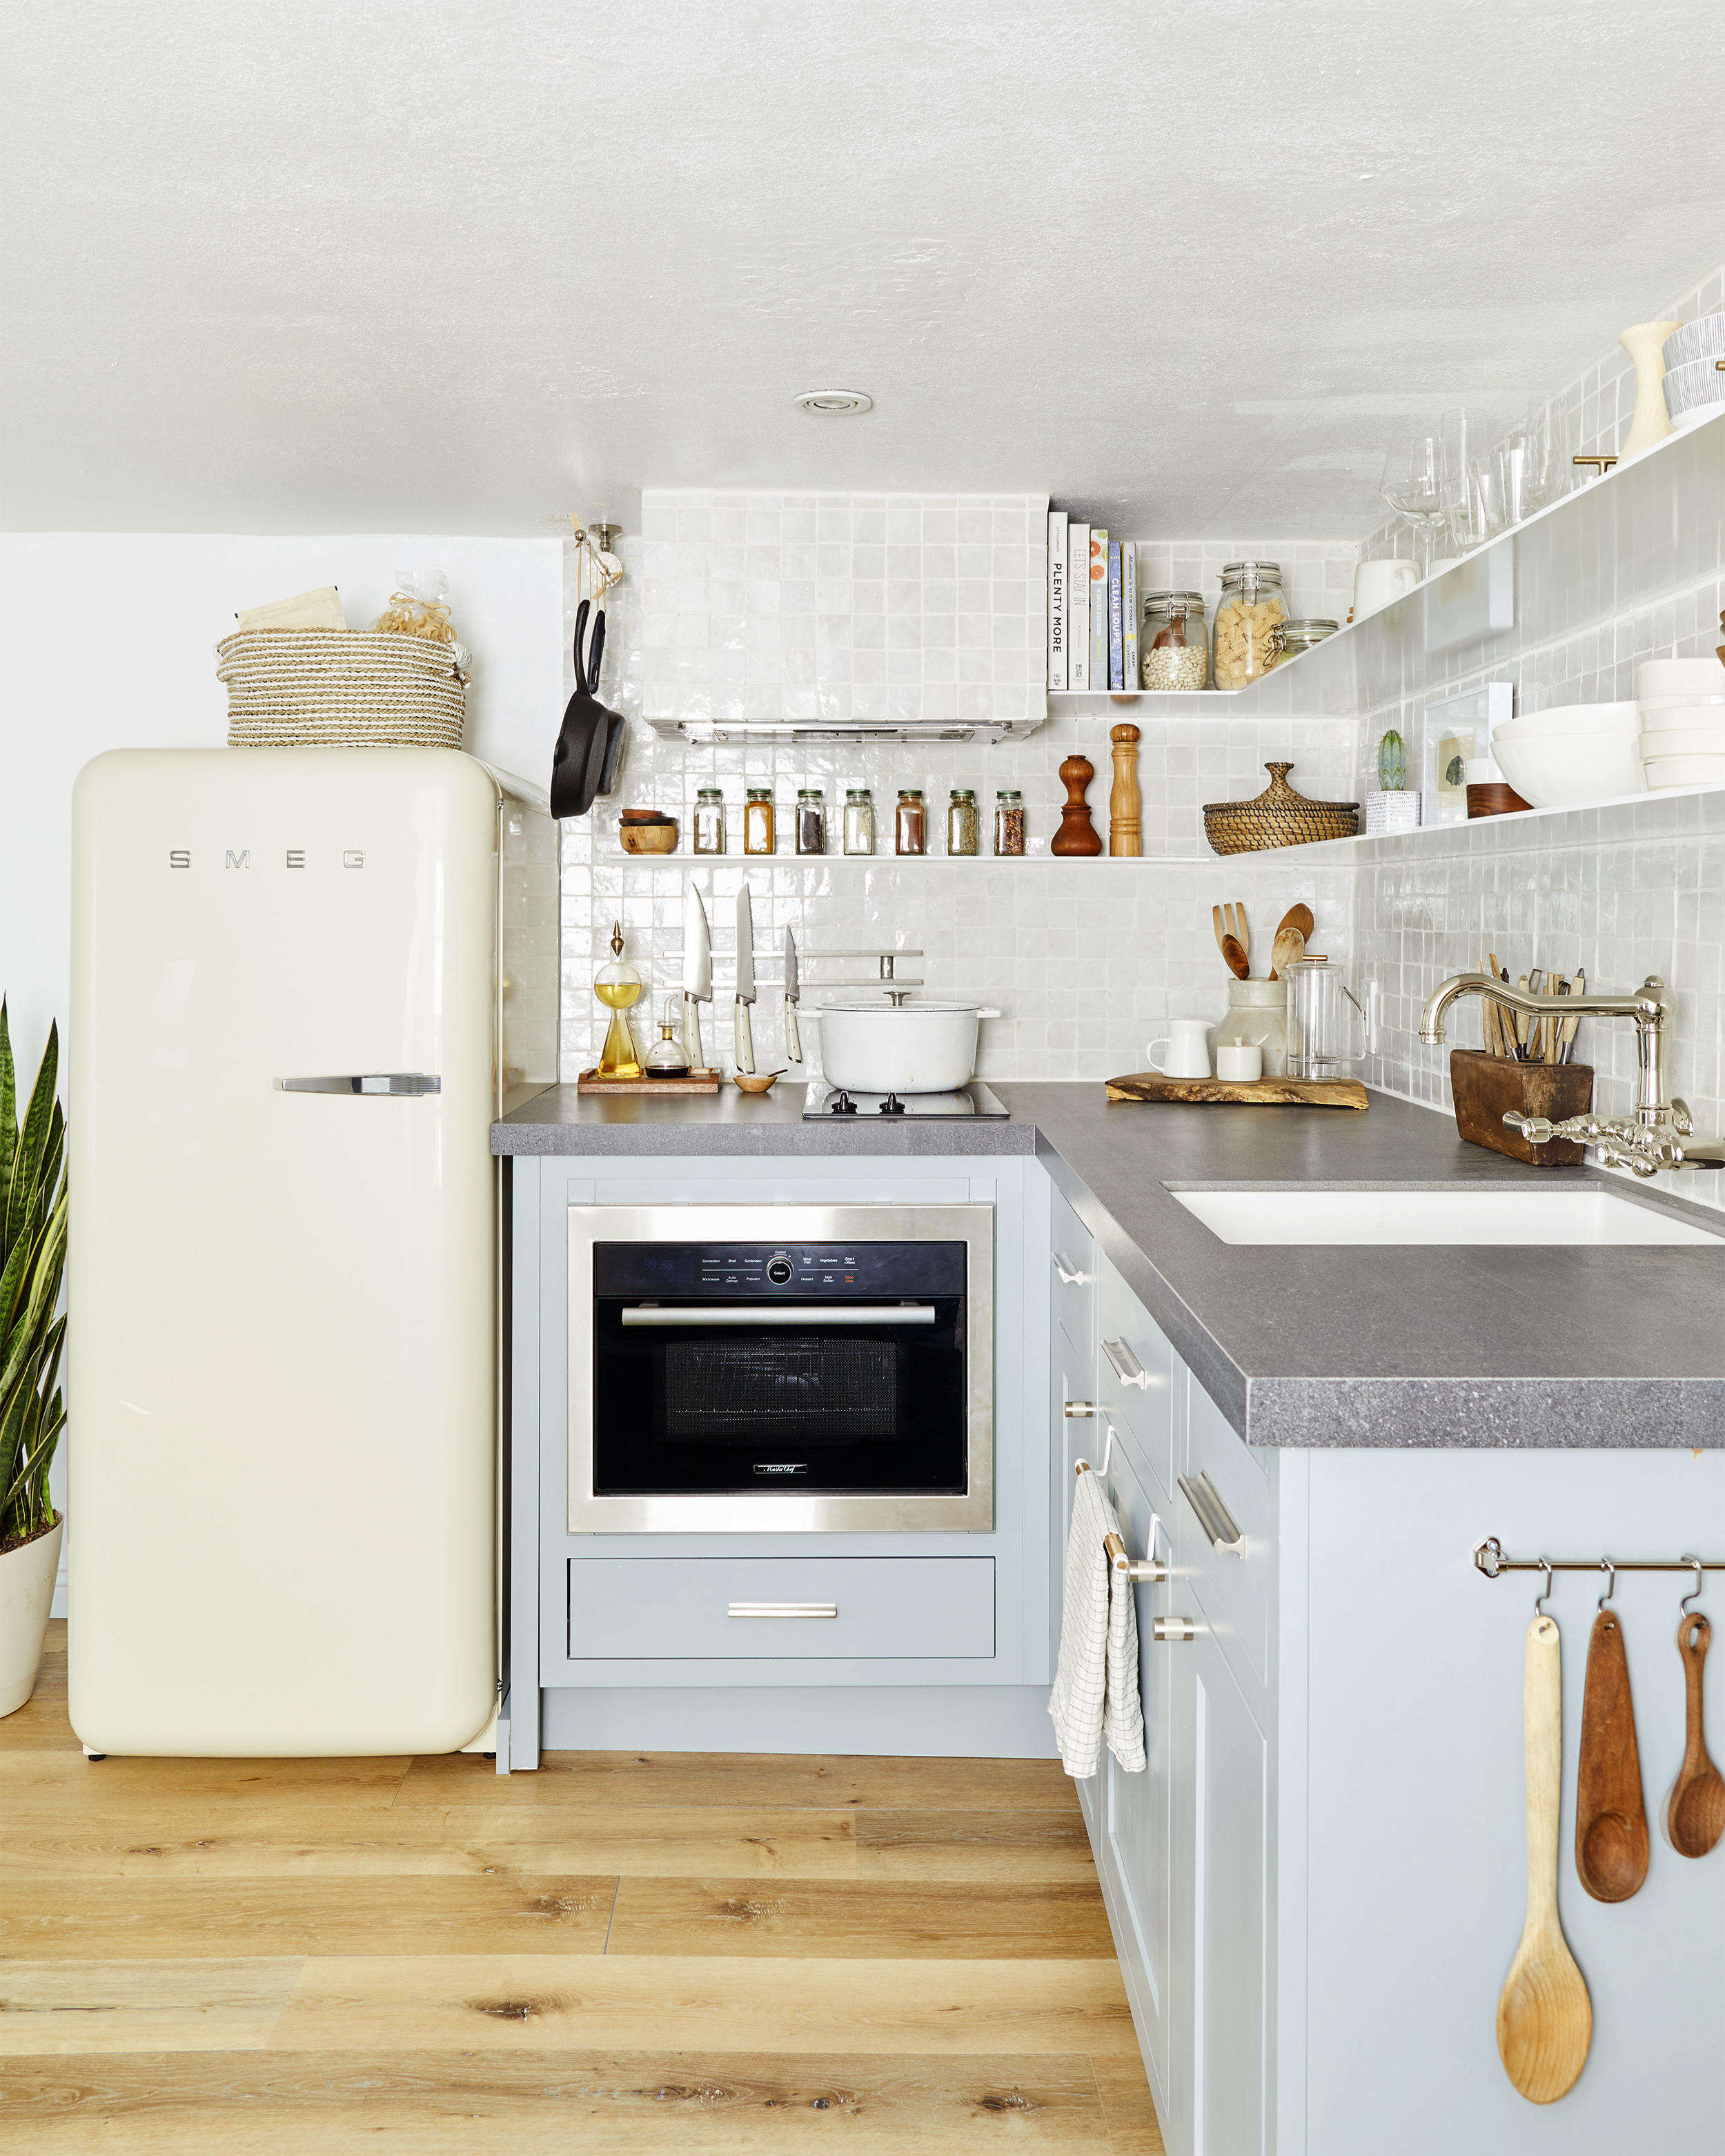 Supersized Storage In A Tiny Kitchen: 7 Game-Changing Aha